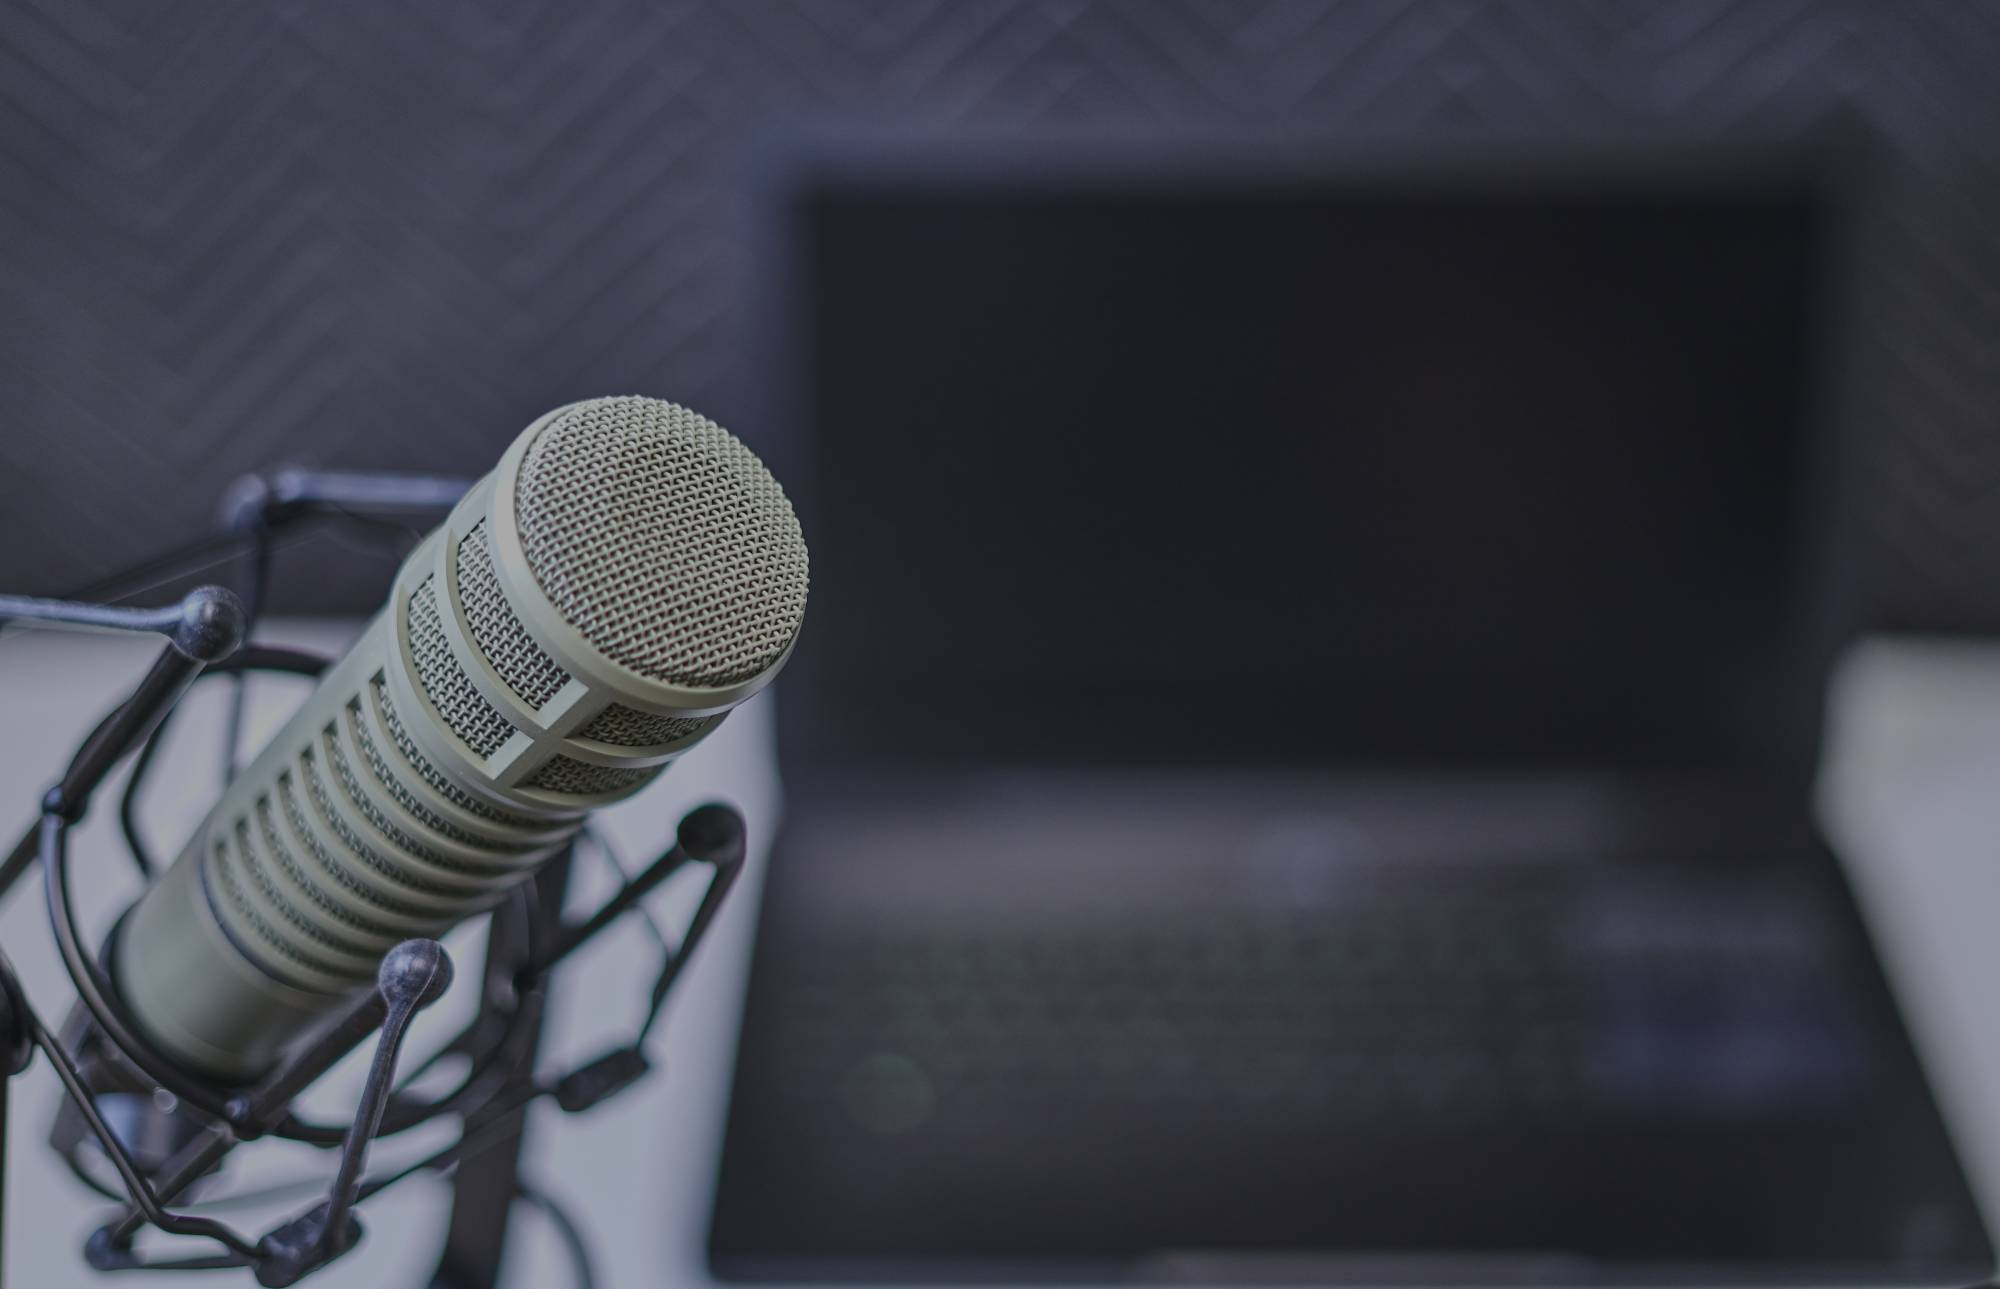 microphone in front of a laptop